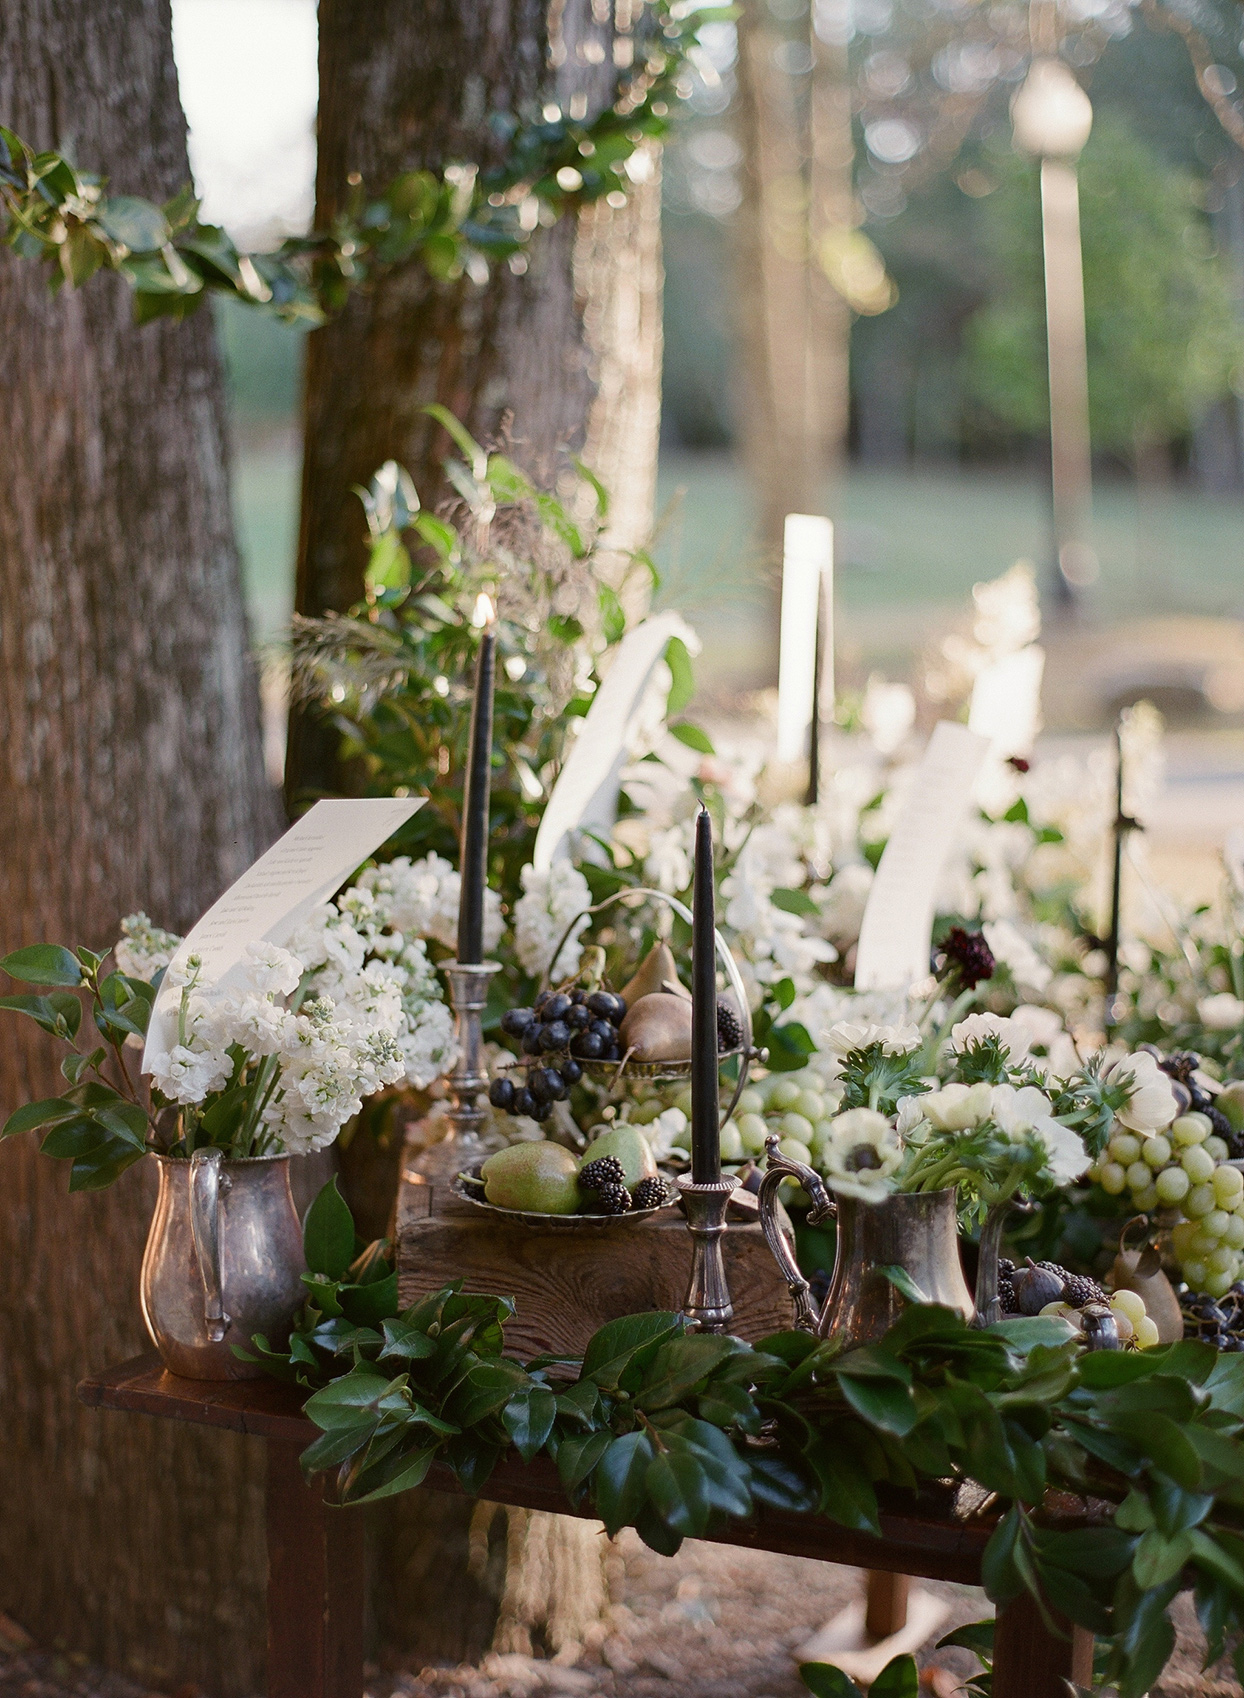 ornate metal jugs filled with flowers and seating chart papers at rustic table